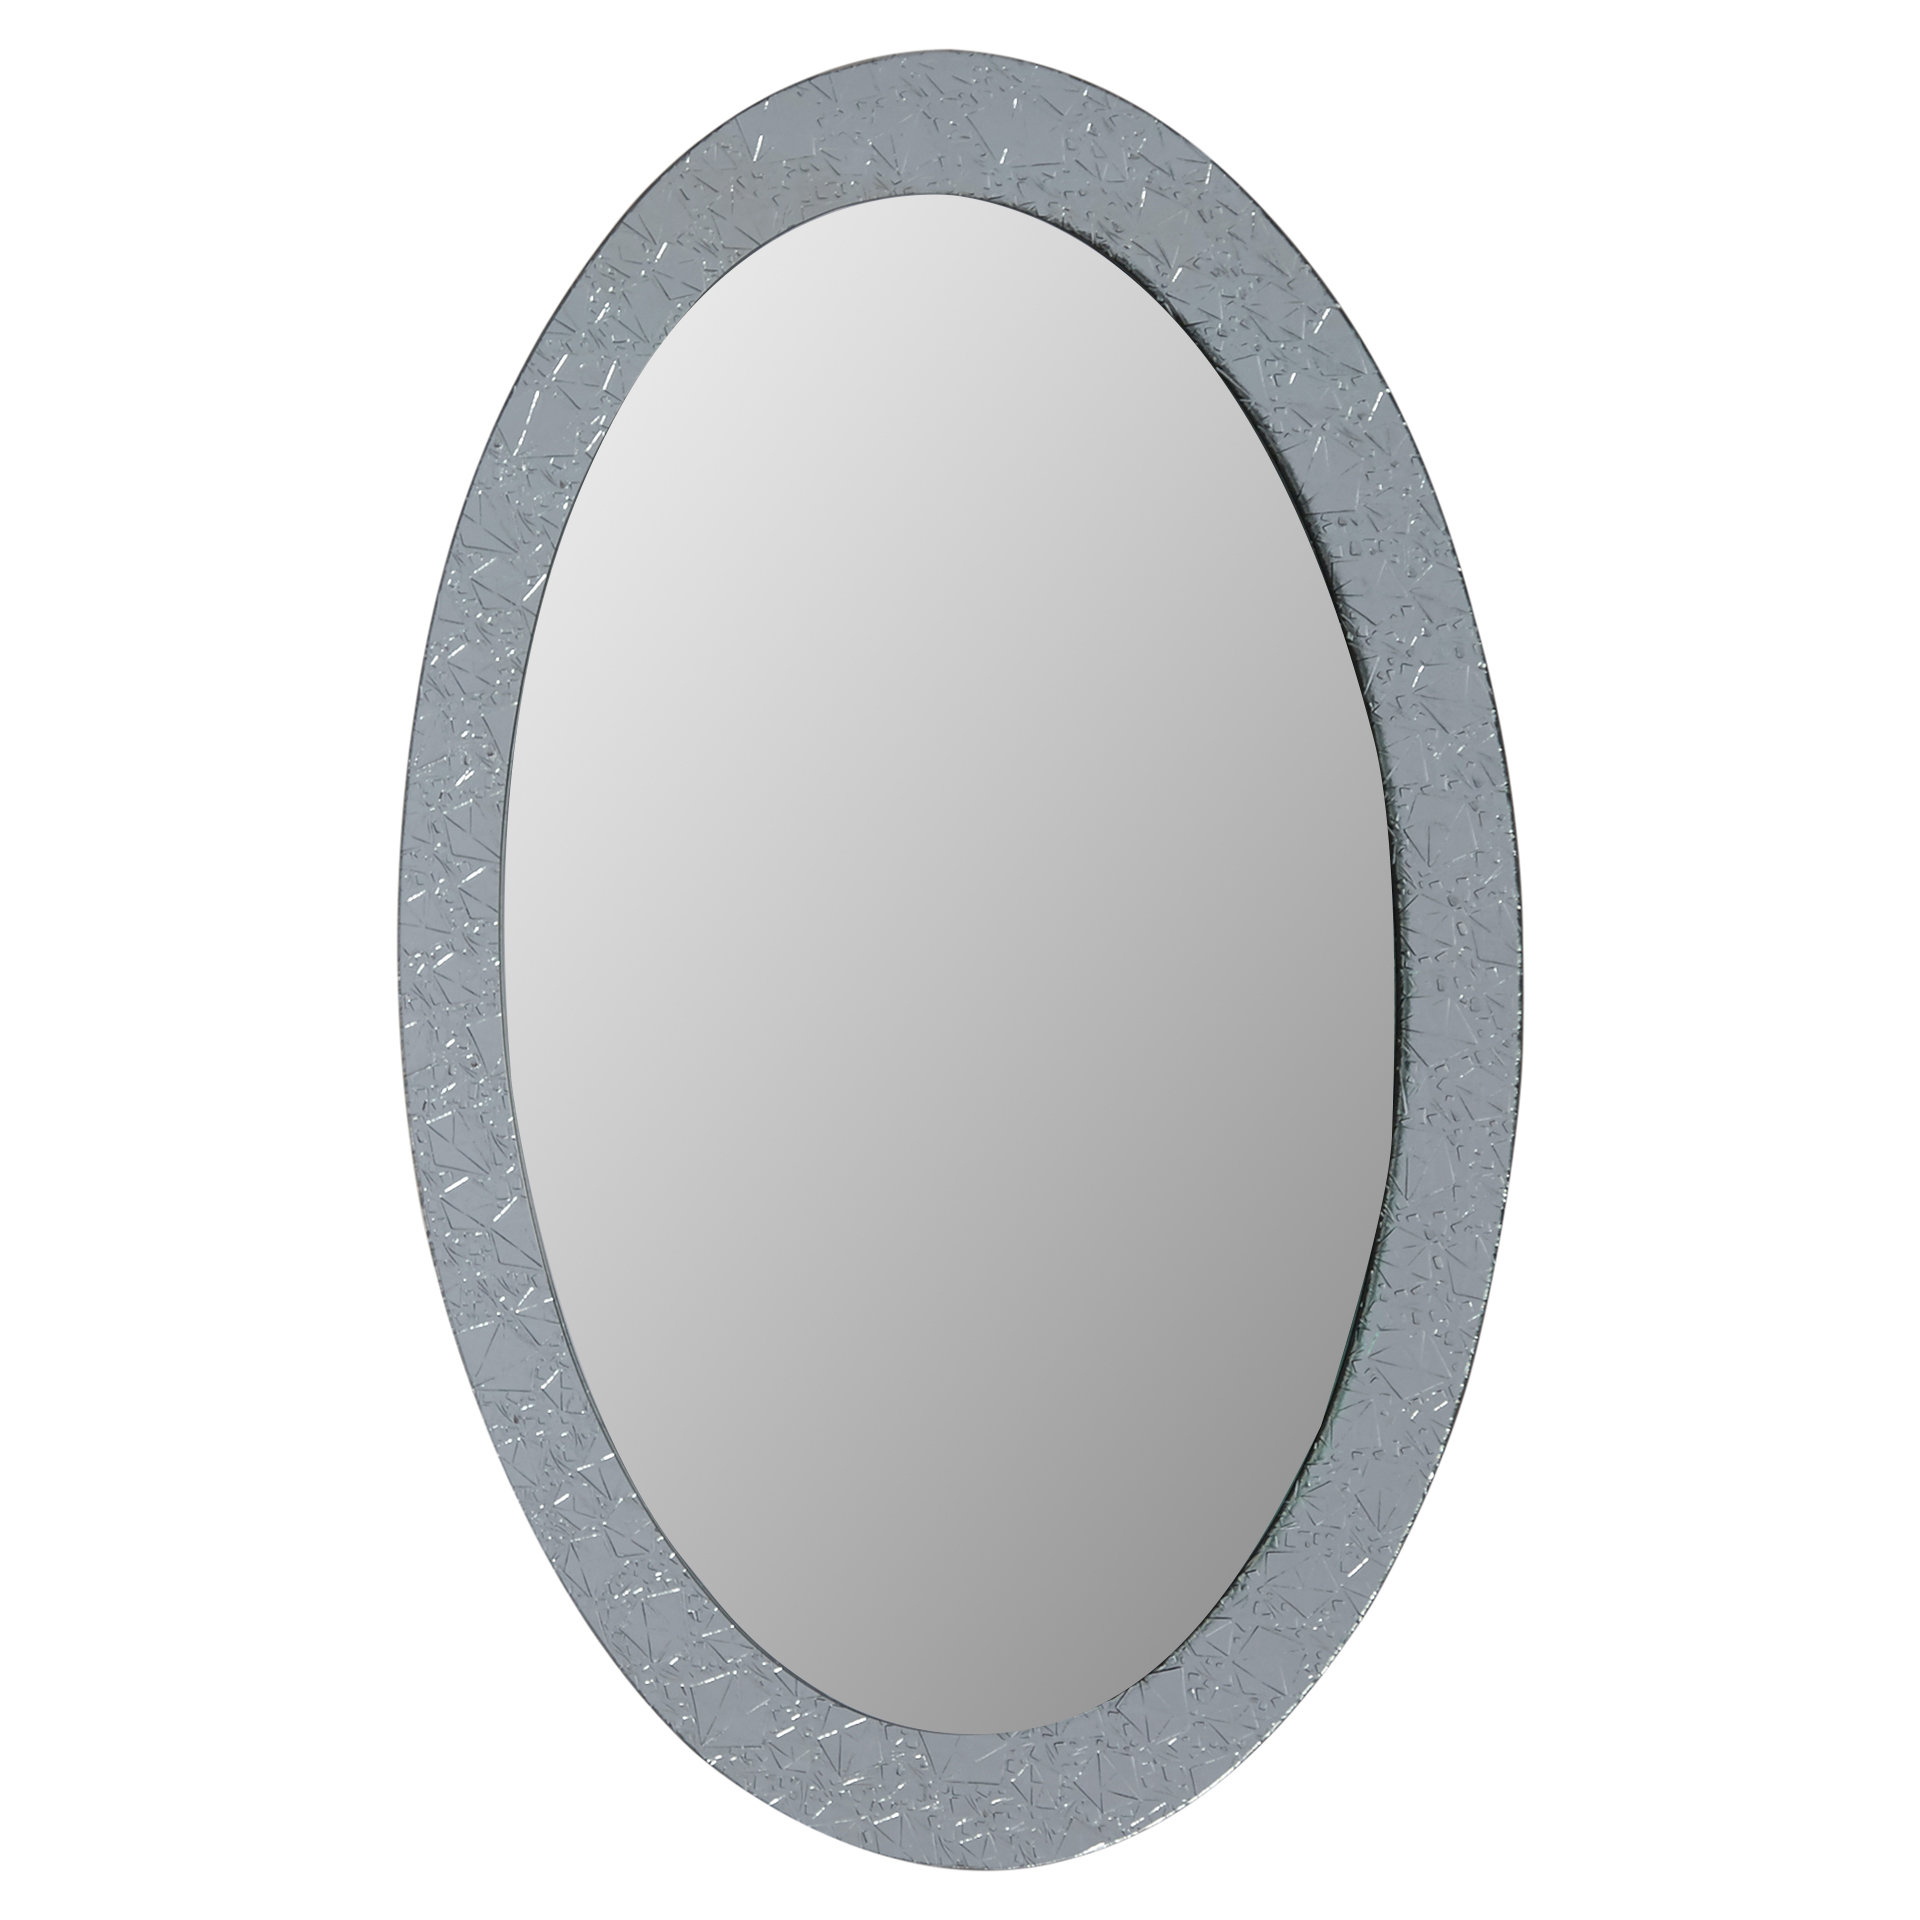 Pfister Oval Wood Wall Mirrors Within Best And Newest Willa Arlo Interiors Sajish Oval Crystal Wall Mirror (View 20 of 20)